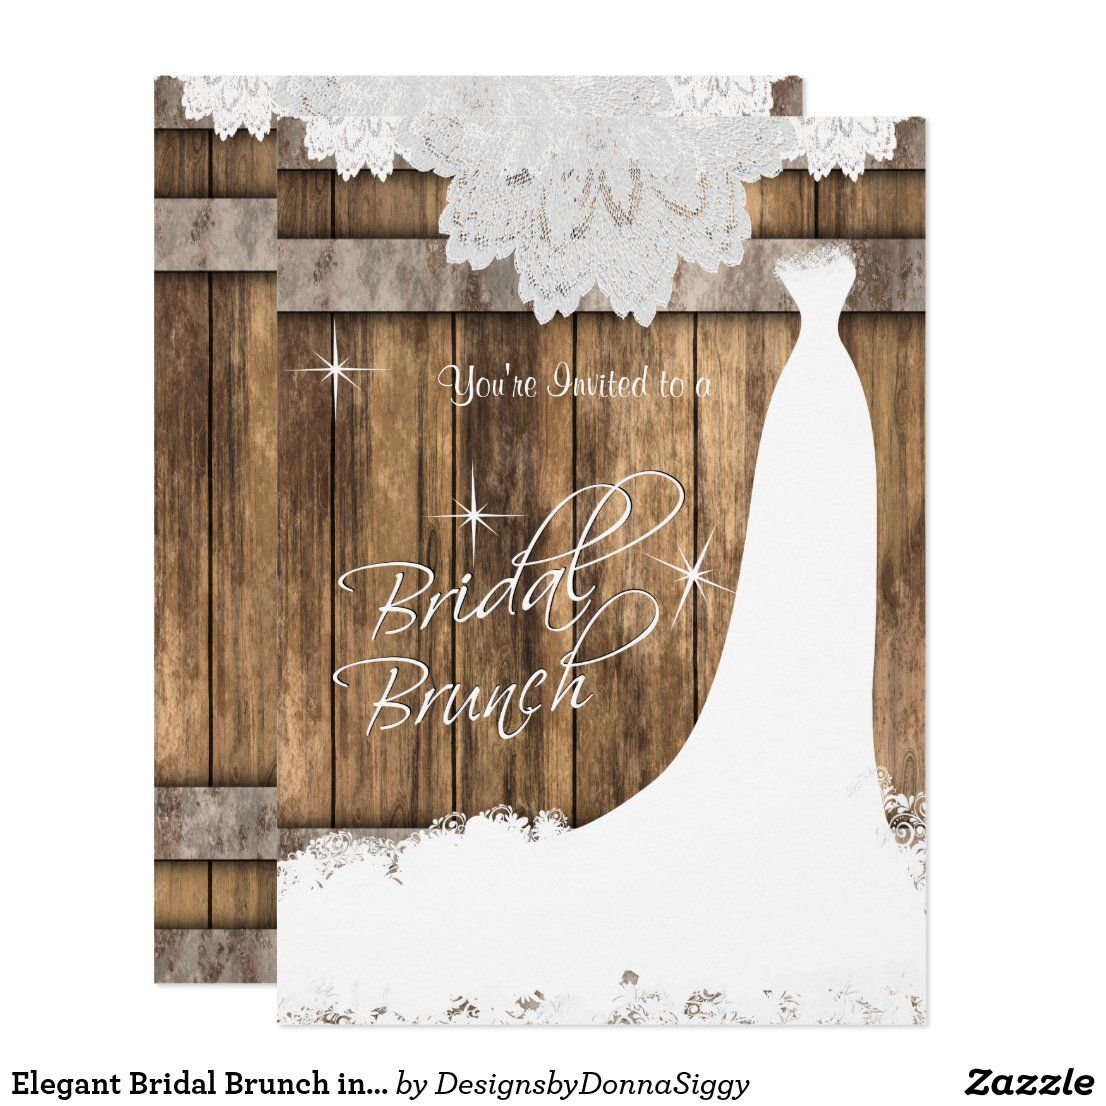 Elegant Bridal Brunch in Rustic Wood and Lace Invitation